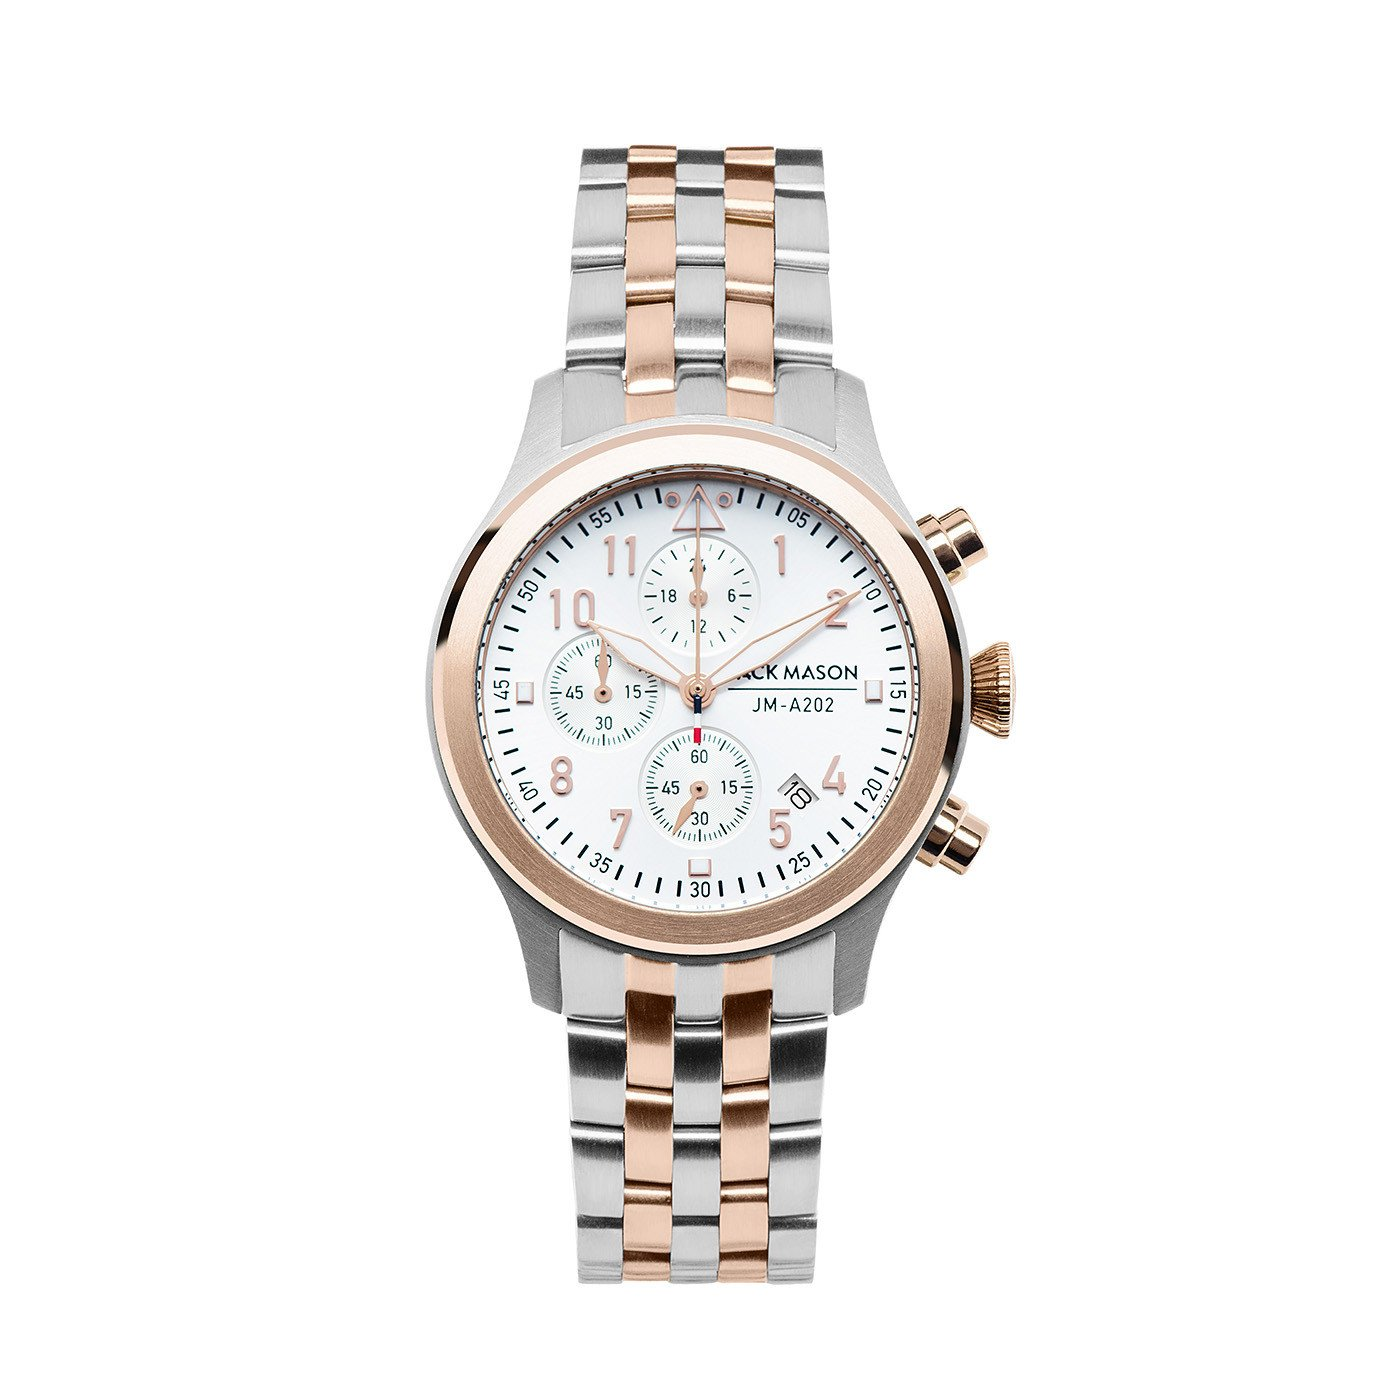 Jack Mason Women's Chronograph Watch Aviator Two Tone Stainless Steel Bracelet JM-A202-224